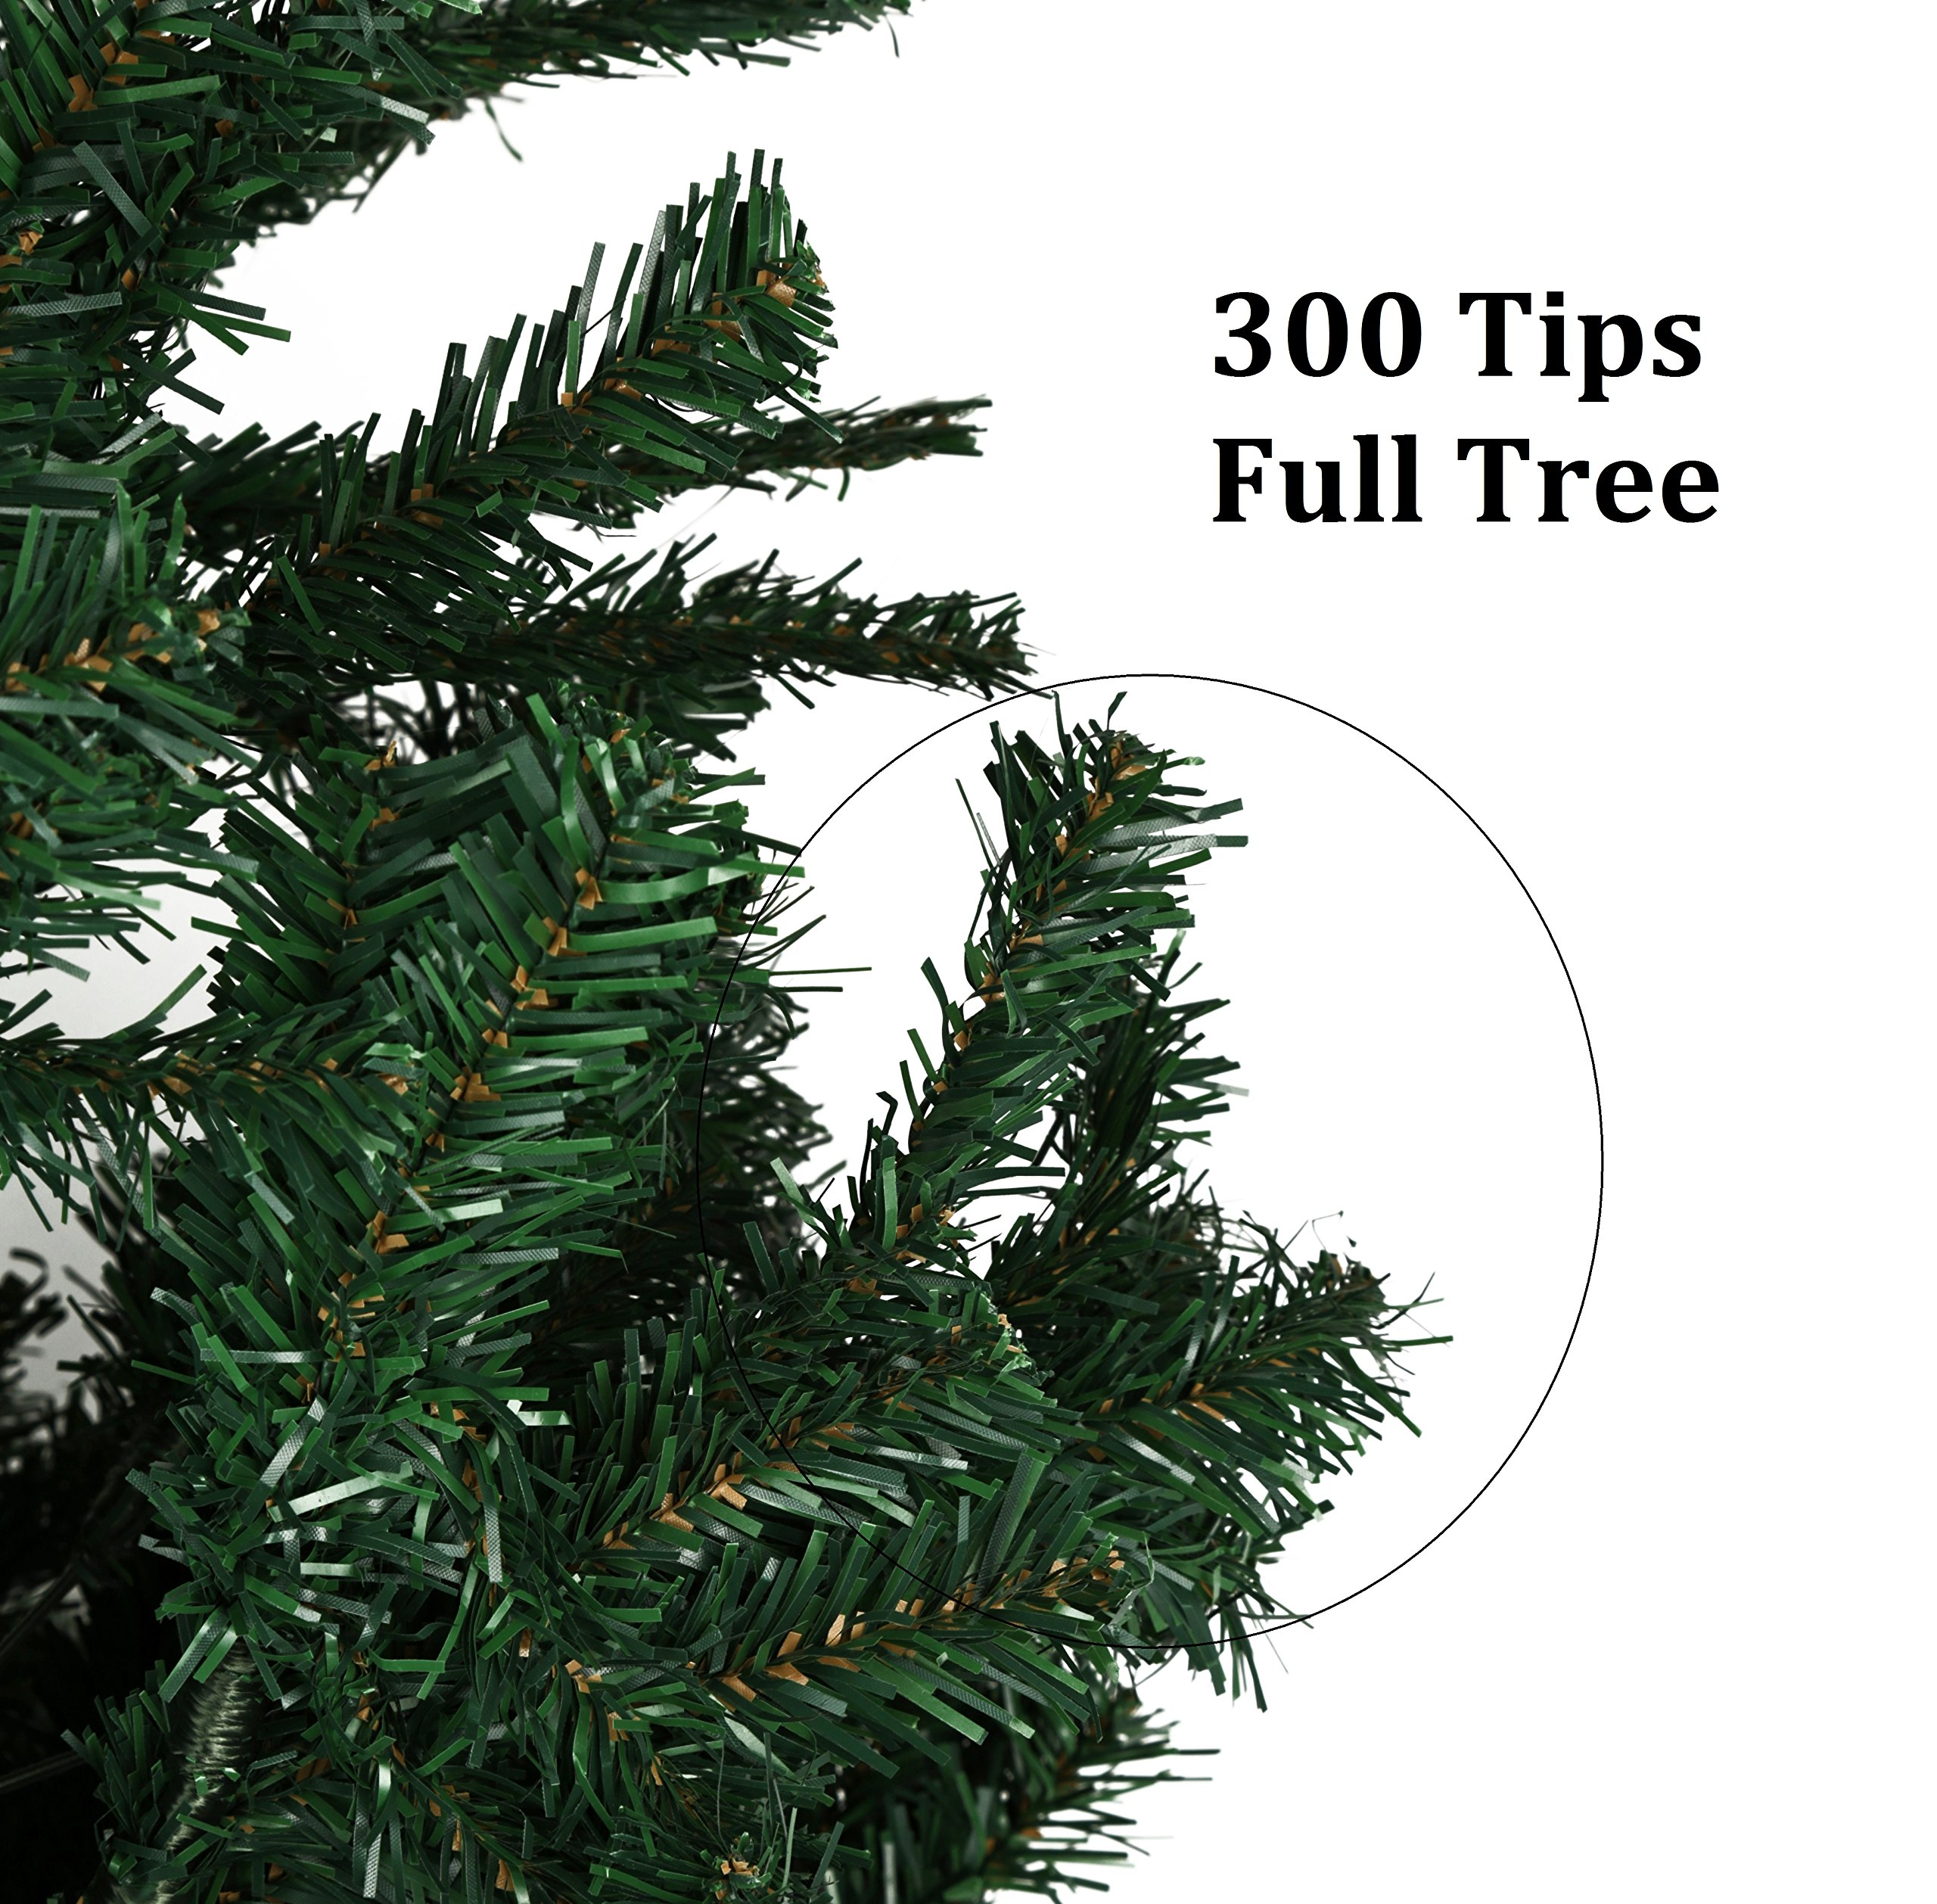 Holiday-Essence-4-Foot-Green-Artificial-Christmas-Tree-300-Tips-with-PVC-Base-Unlit